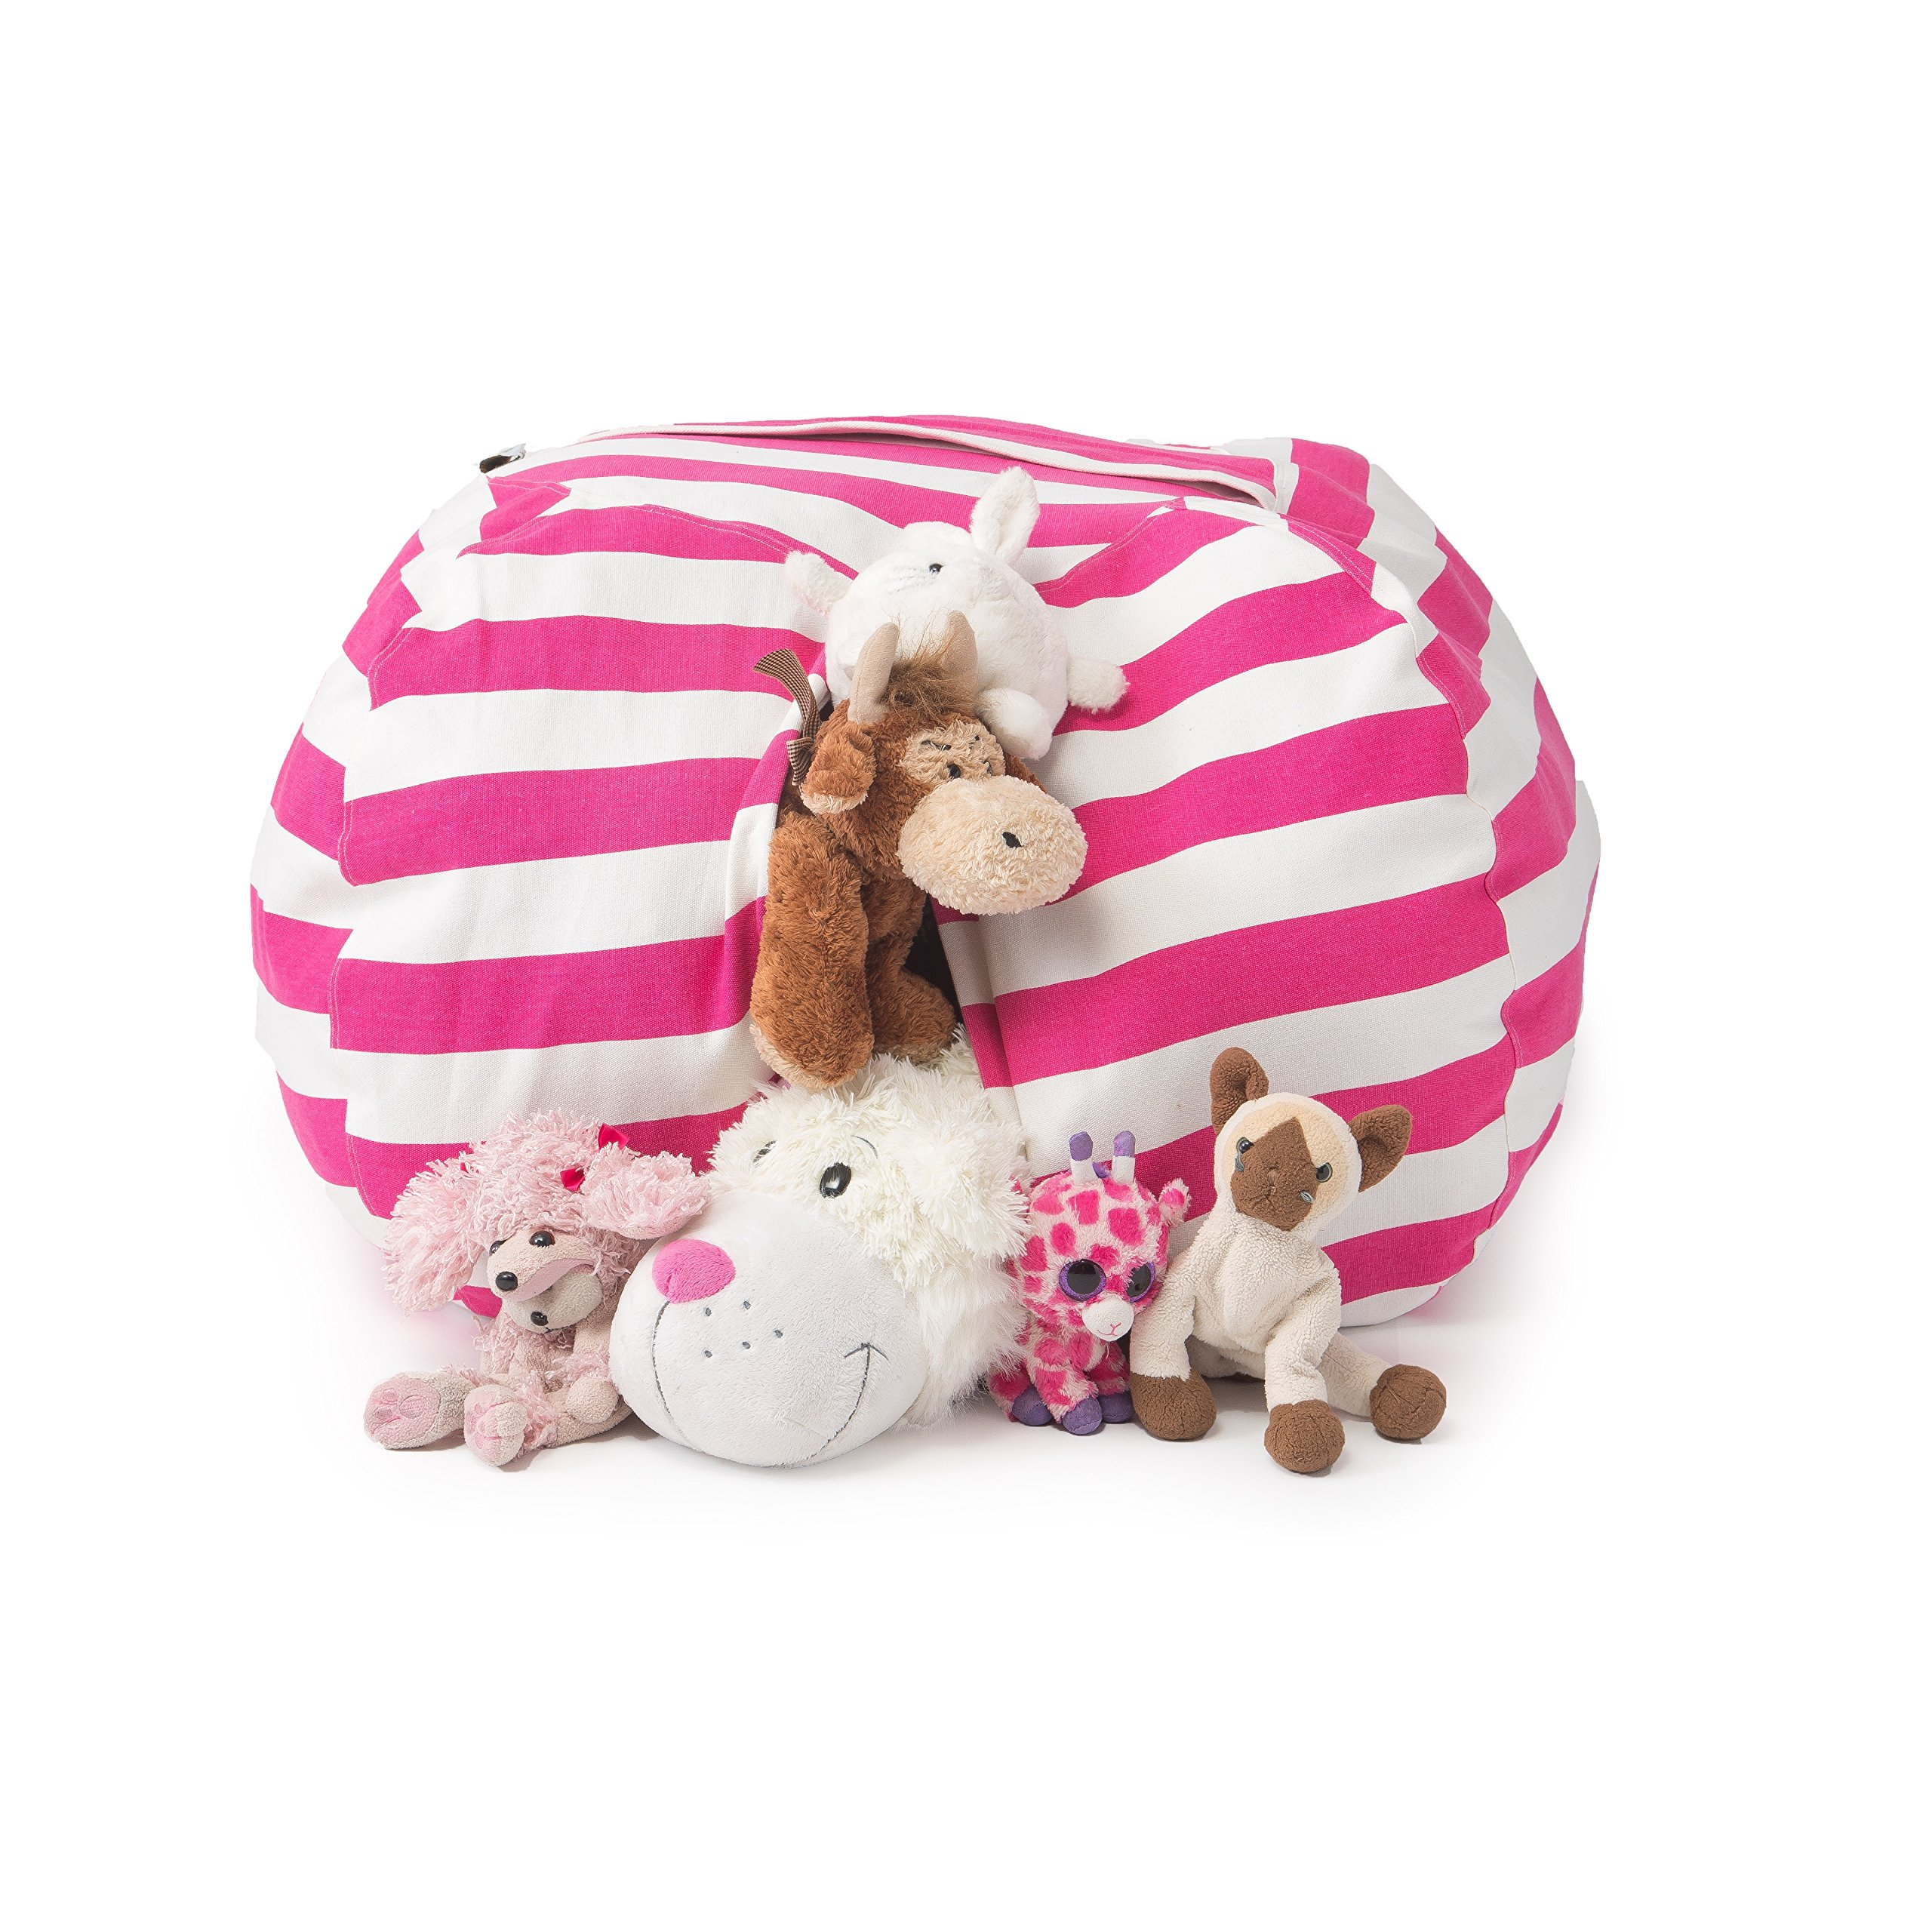 T-Bugs Best Stuffed Animal Storage Bean Bag Chair, Premium Cotton Canvas Toy Organizer for Kids Bedroom, Perfect Storage Solution for Plush Toys, Blankets, Towels & Clothes (38'', Pink/White Stripes)